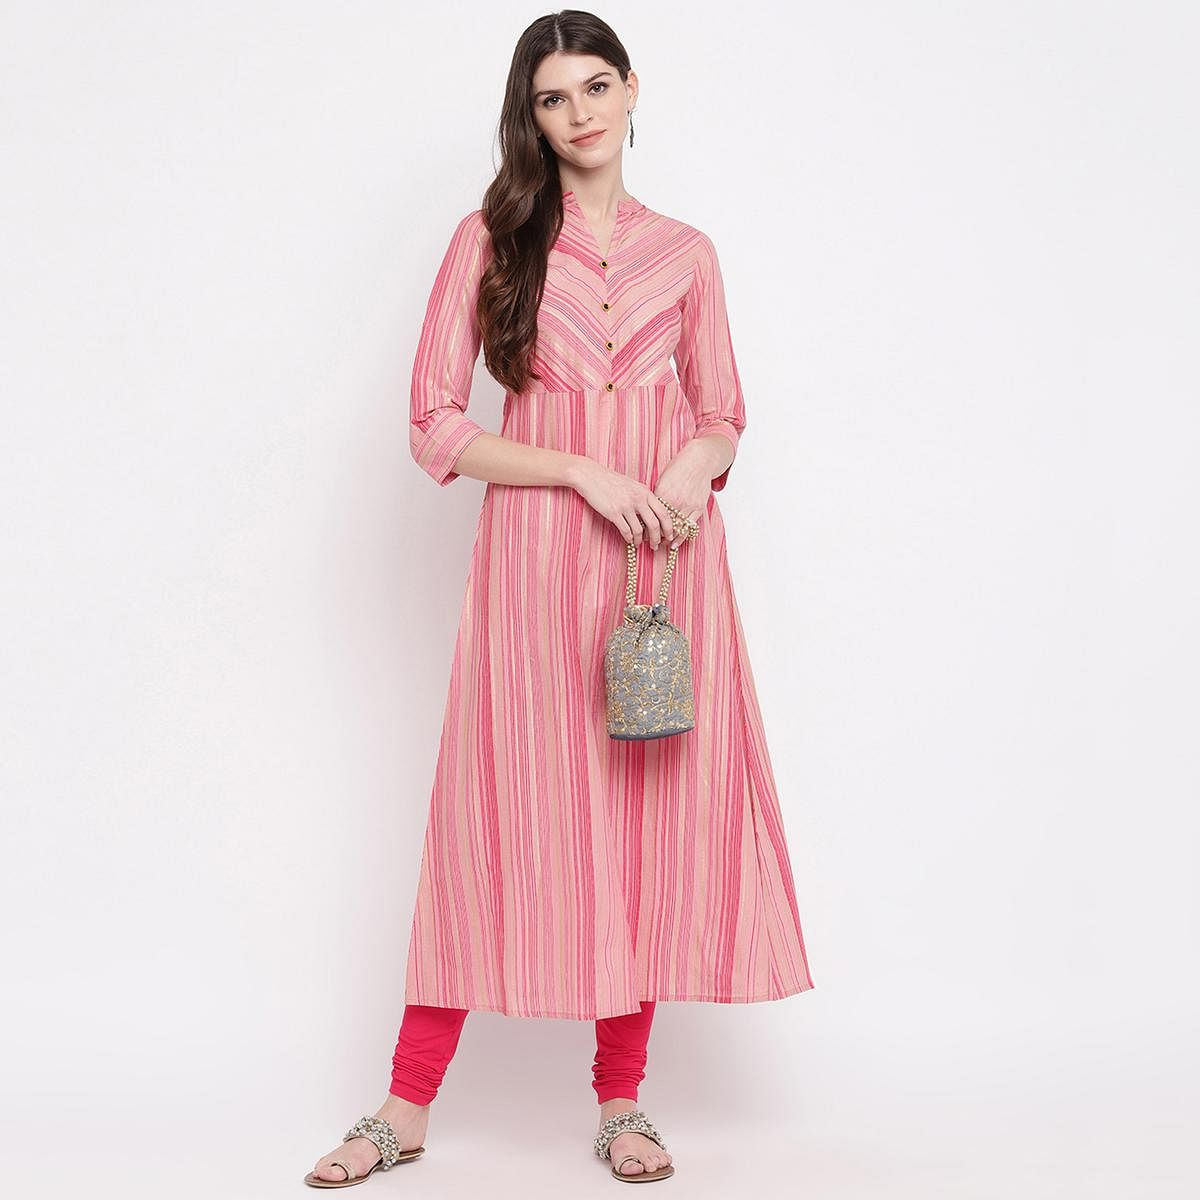 Stylum Opulent Pink Colored Party Wear Stripe Printed A-Line Ankle Length Cambric Cotton Kurti